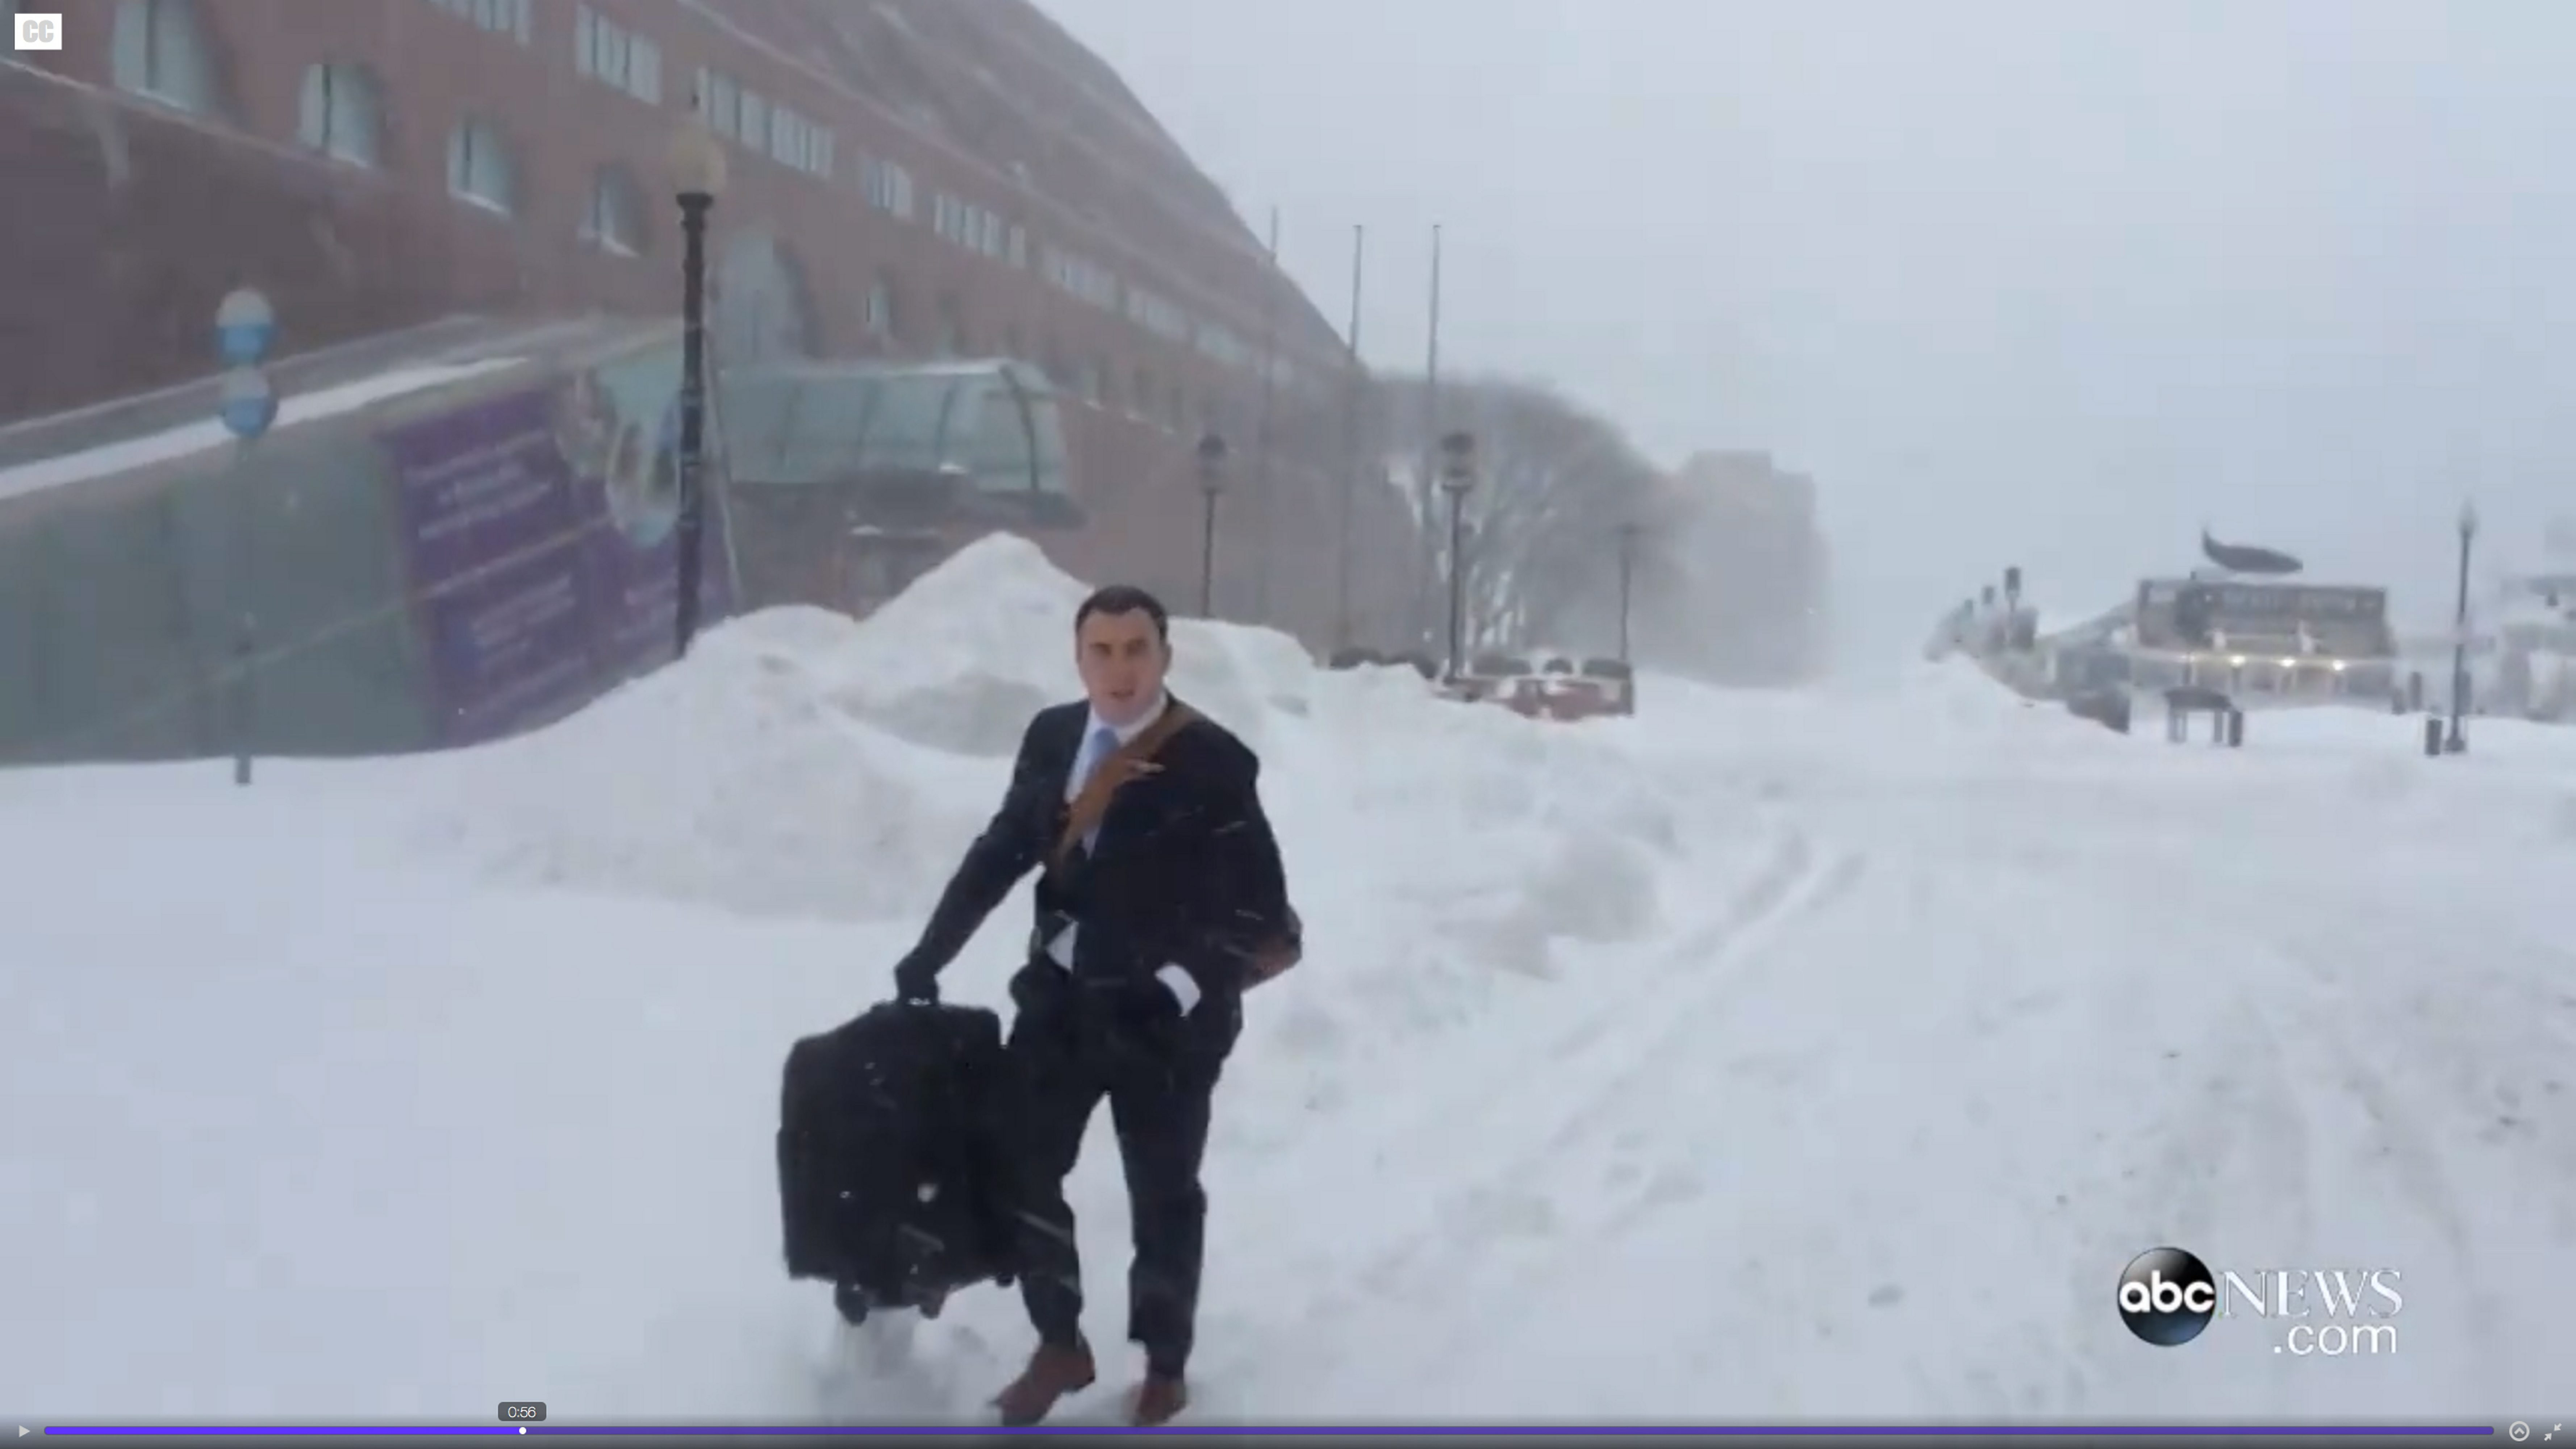 East Aurora native Shawn Mascia was filmed by an ABC News crew walking to work in the middle of Boston's blizzard.